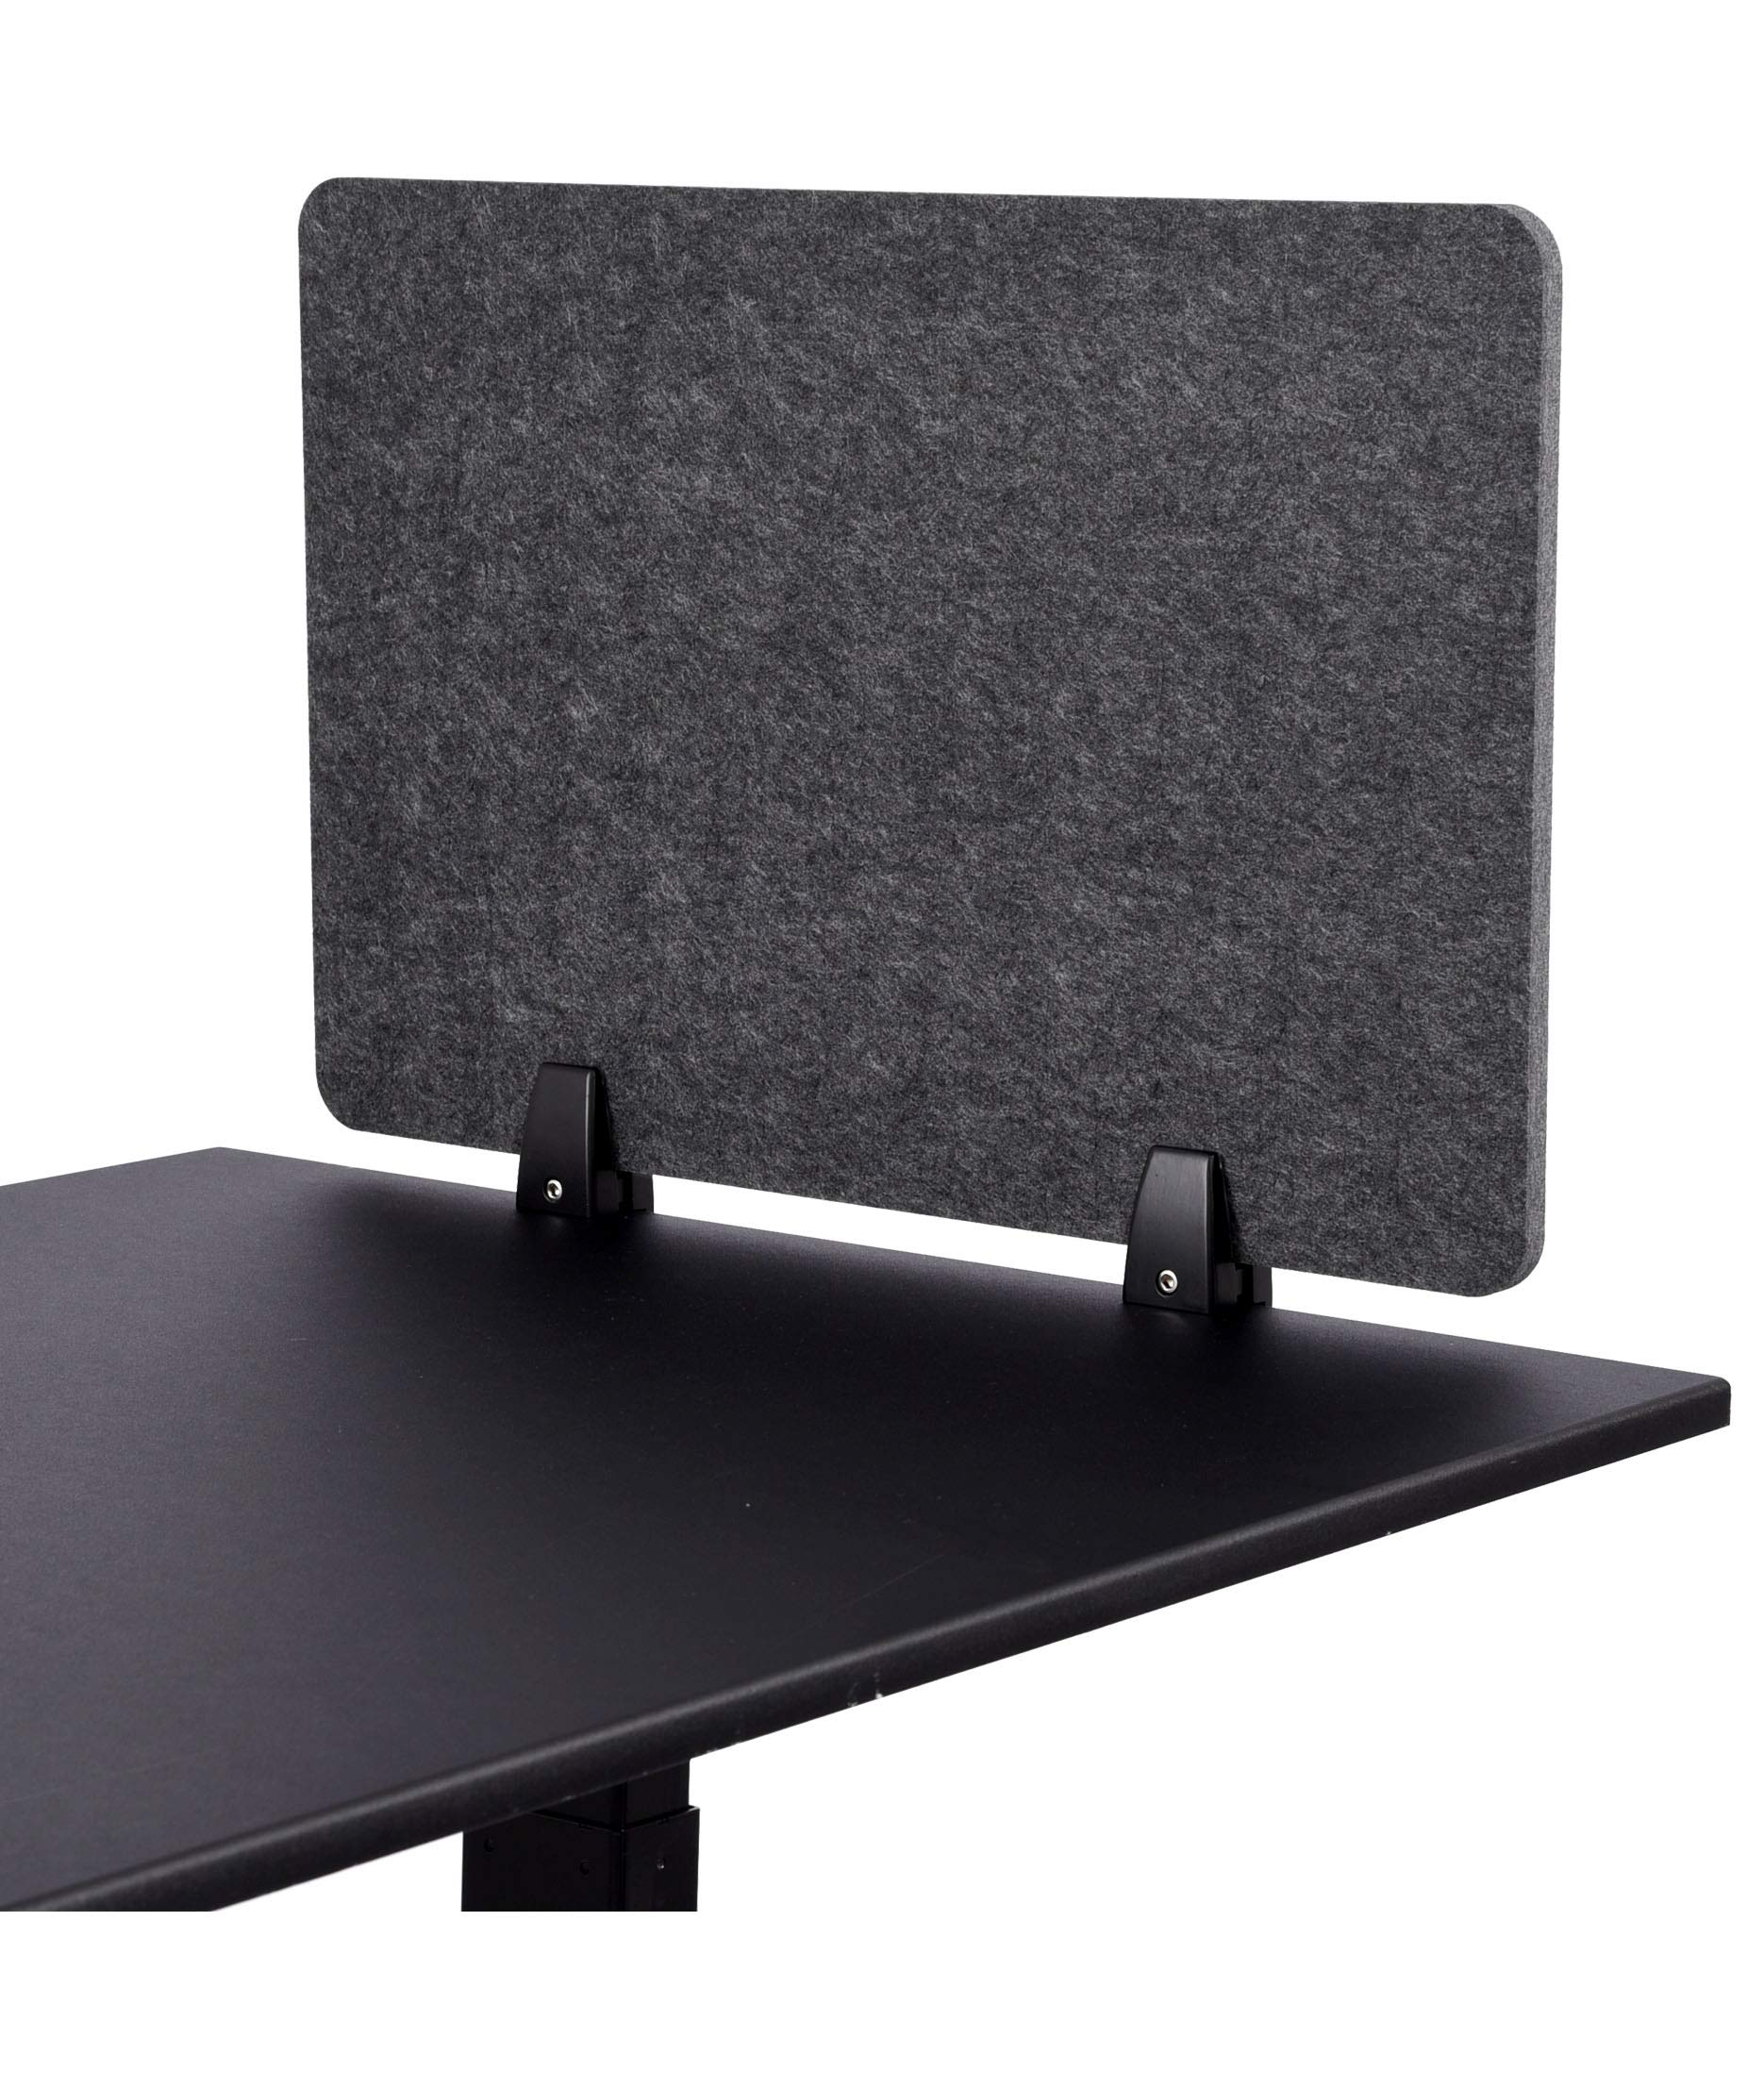 ReFocus Raw Clamp-On Acoustic Desk Divider - Reduce Noise and Visual Distractions with This Lightweight Desk Mounted Privacy Panel (Anthracite Gray, 24'' X 16'') by Stand Up Desk Store